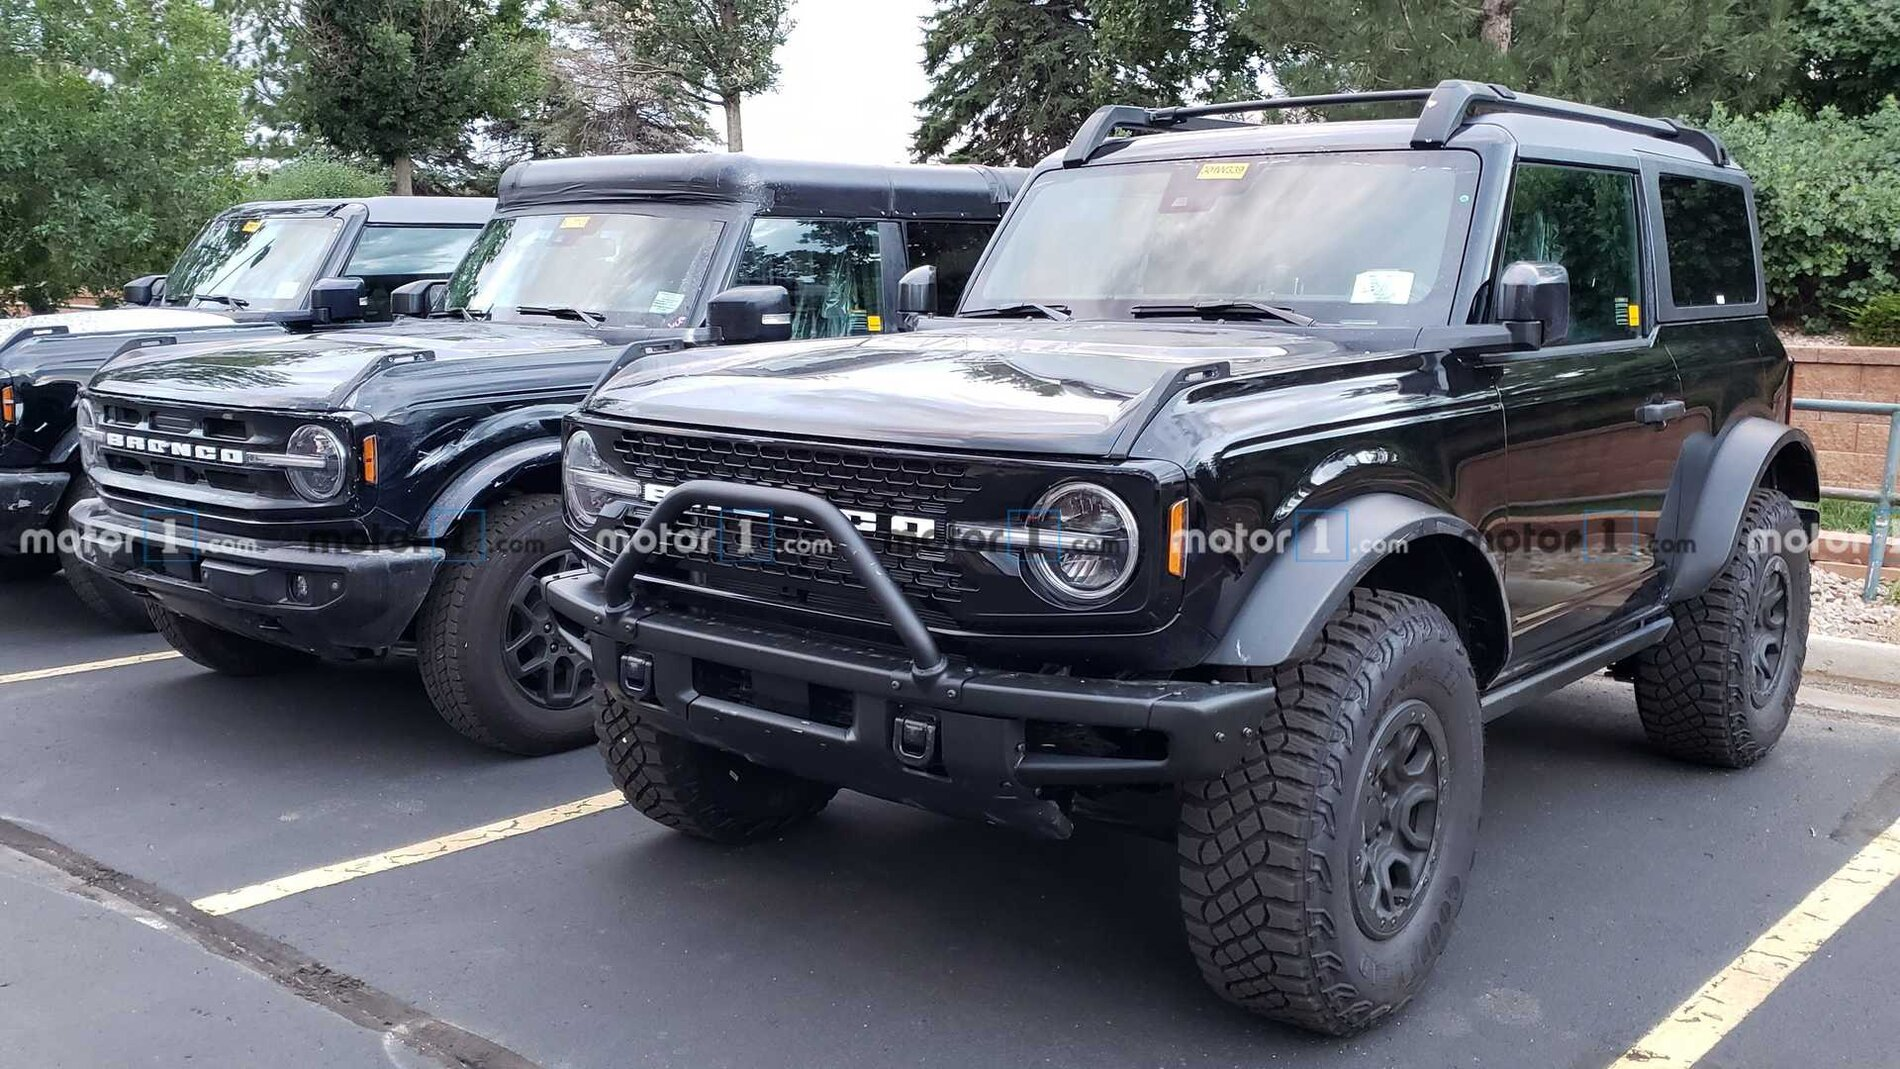 ford-bronco-sasquatch-comparison-3-jpg.jpg